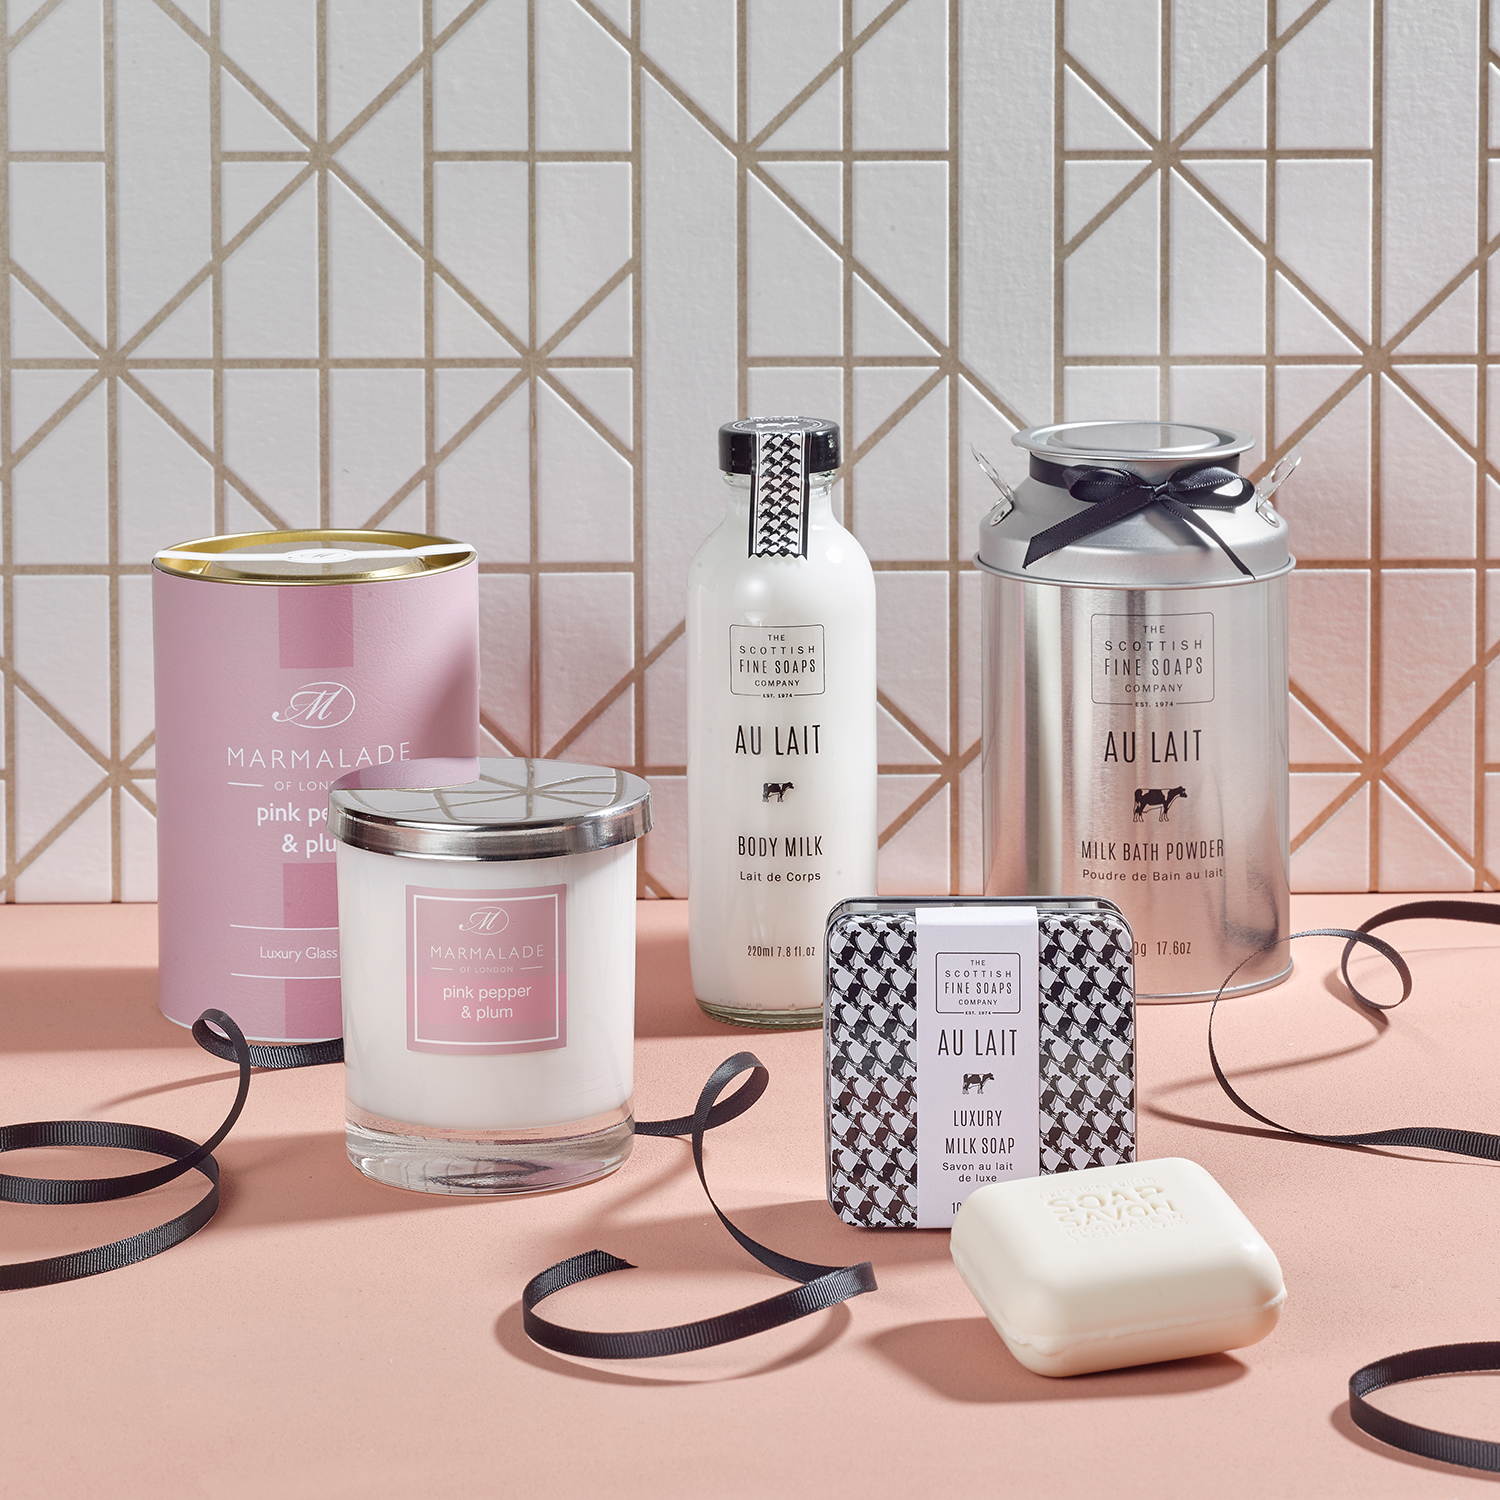 Cosmetic beauty product photography from london lifestyle and still life photographer Chris Howlett